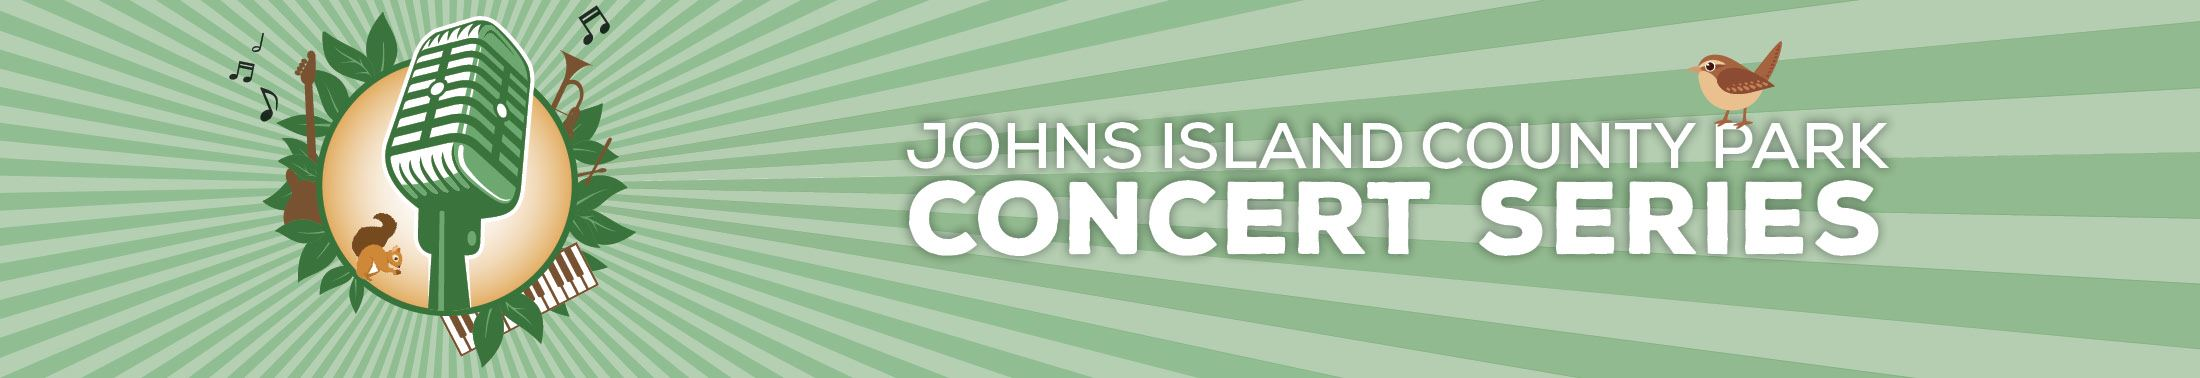 Web banner for the Johns Island County Park Concert Series